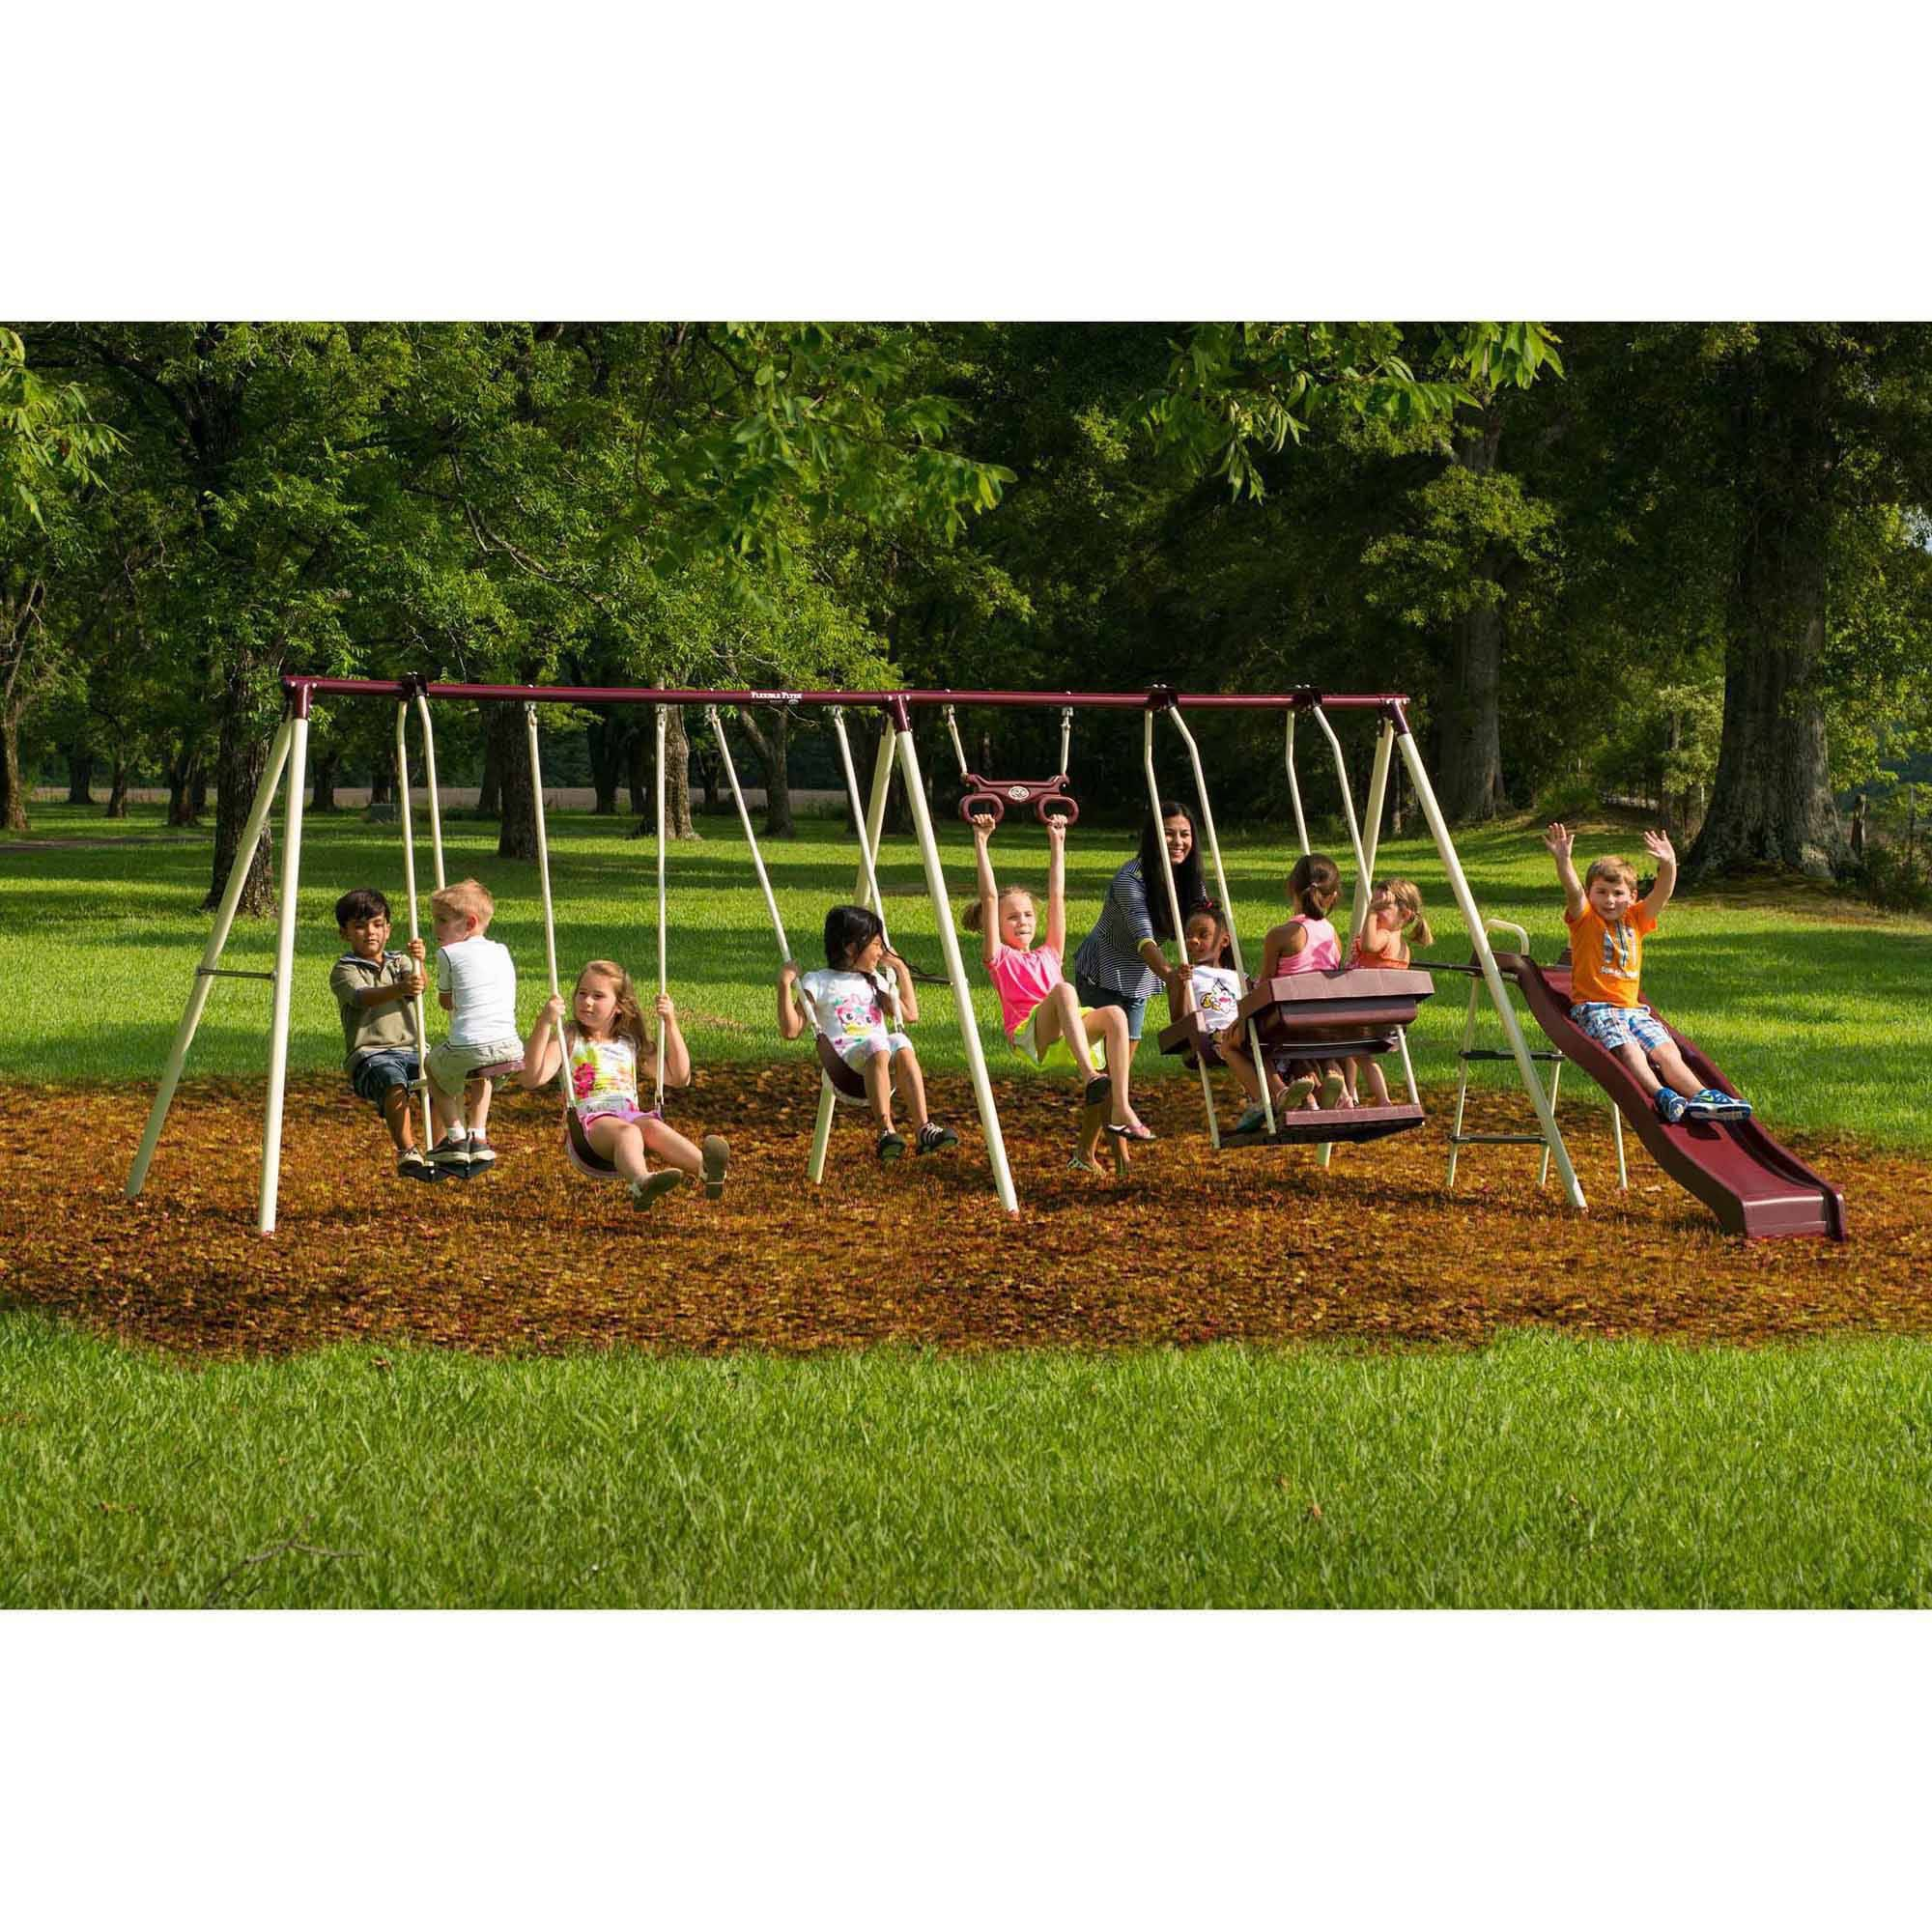 remarkable ultra sears with hd outstanding on swingsetmall swing backyard w post discovery h x set wooden photo wood astonishing reviews somerset instructions somersetsomerset resolutions